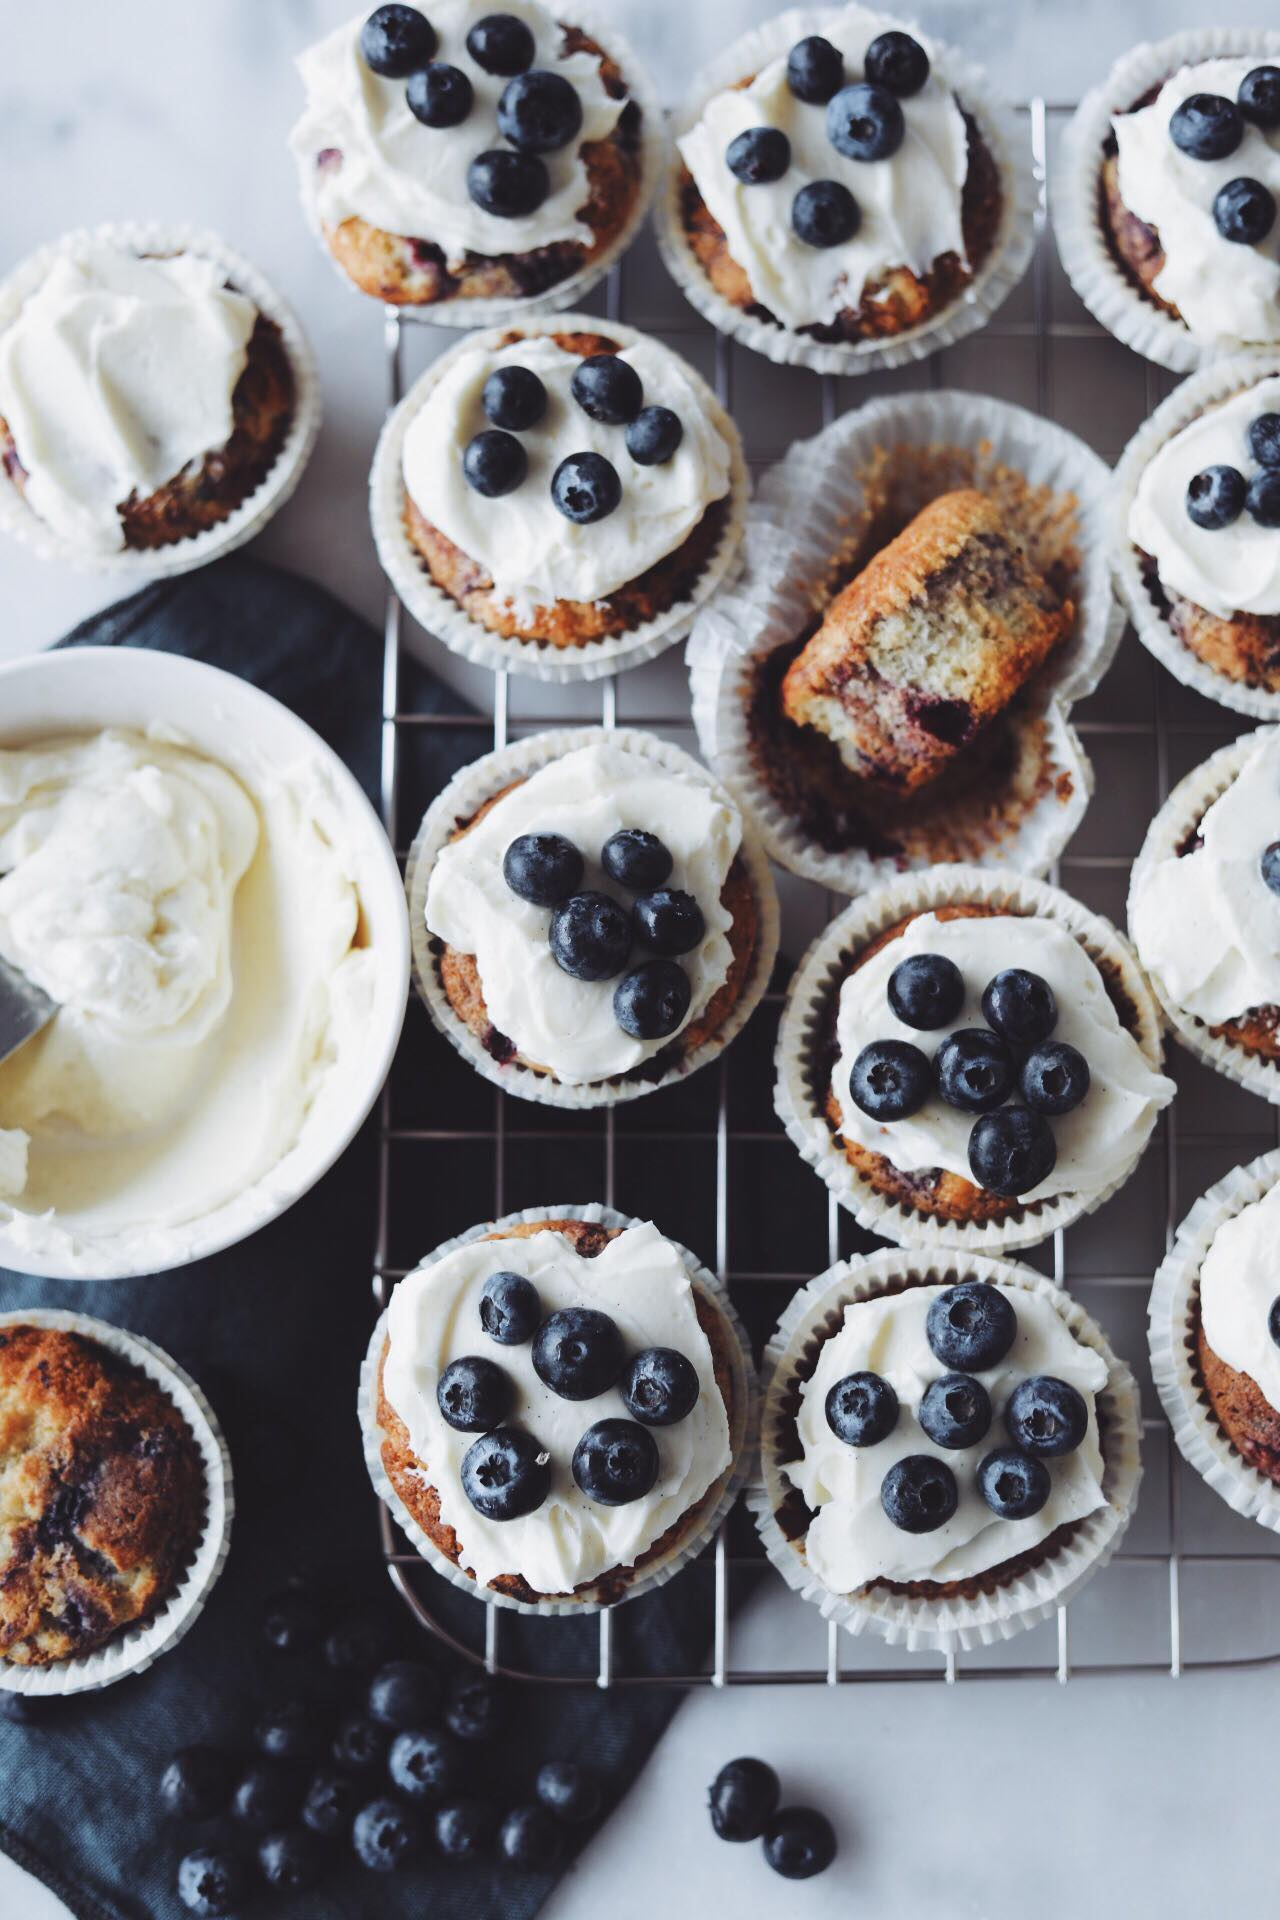 Blåbærmuffins med cream cheese frosting